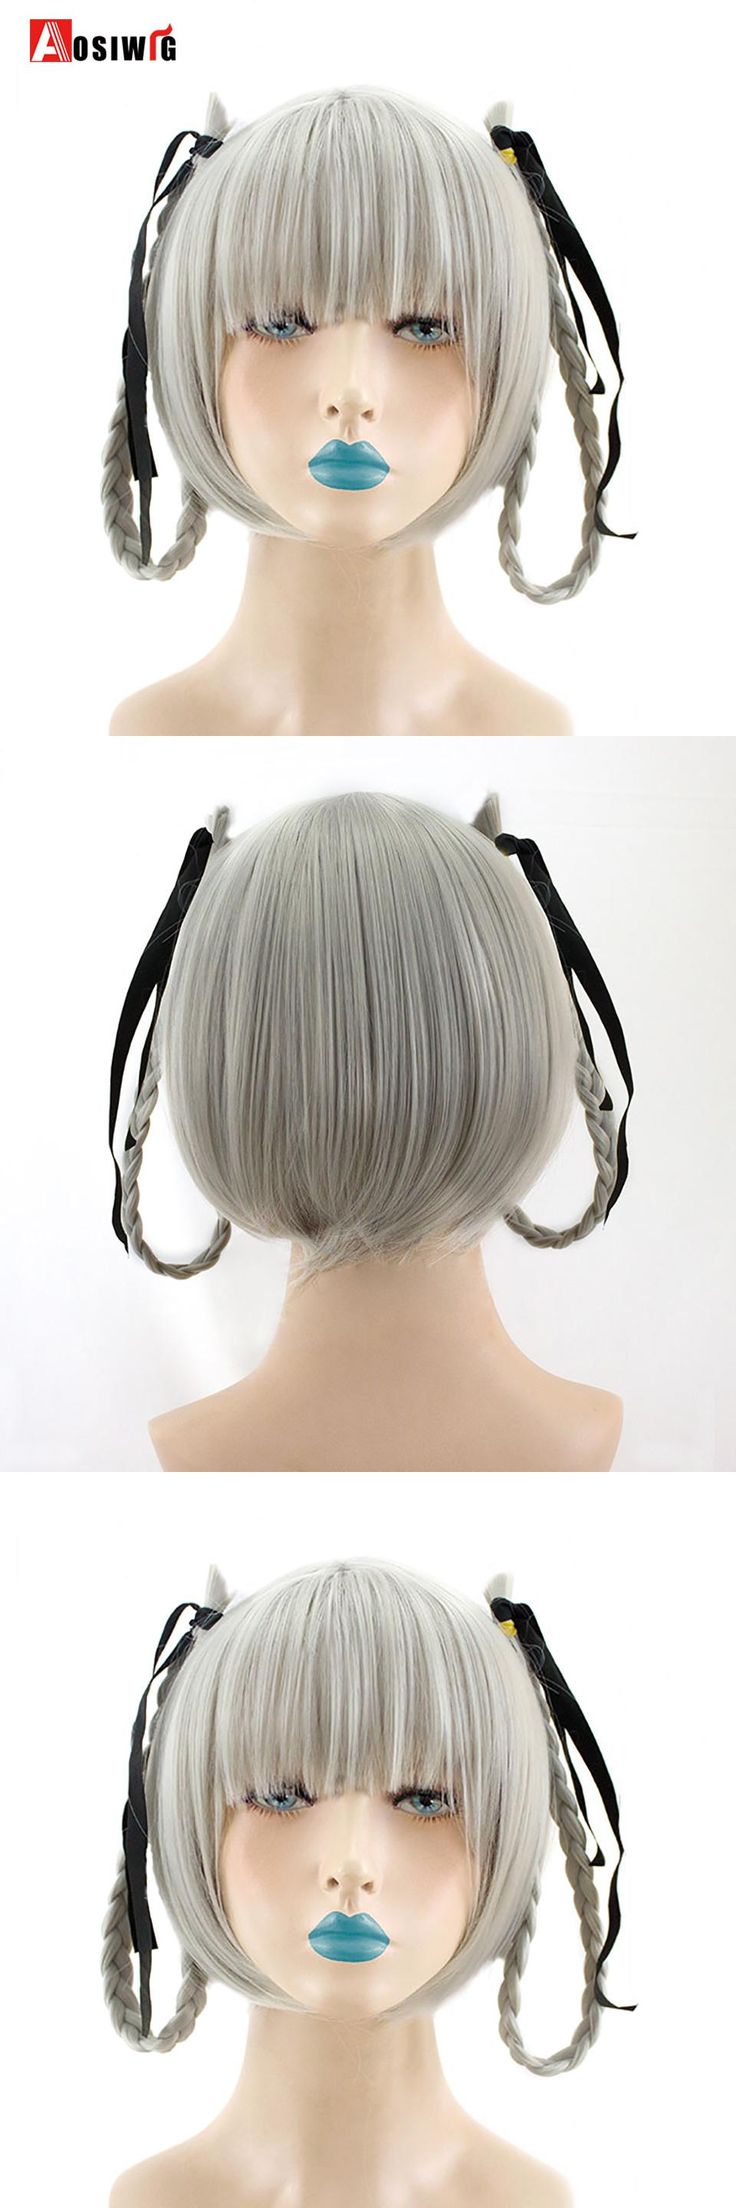 AOSIWIG Short Straight Hair Silver Wigs Double Braiding Hair Extensions Wigs Heat Resistant Synthetic Cosplay Wigs